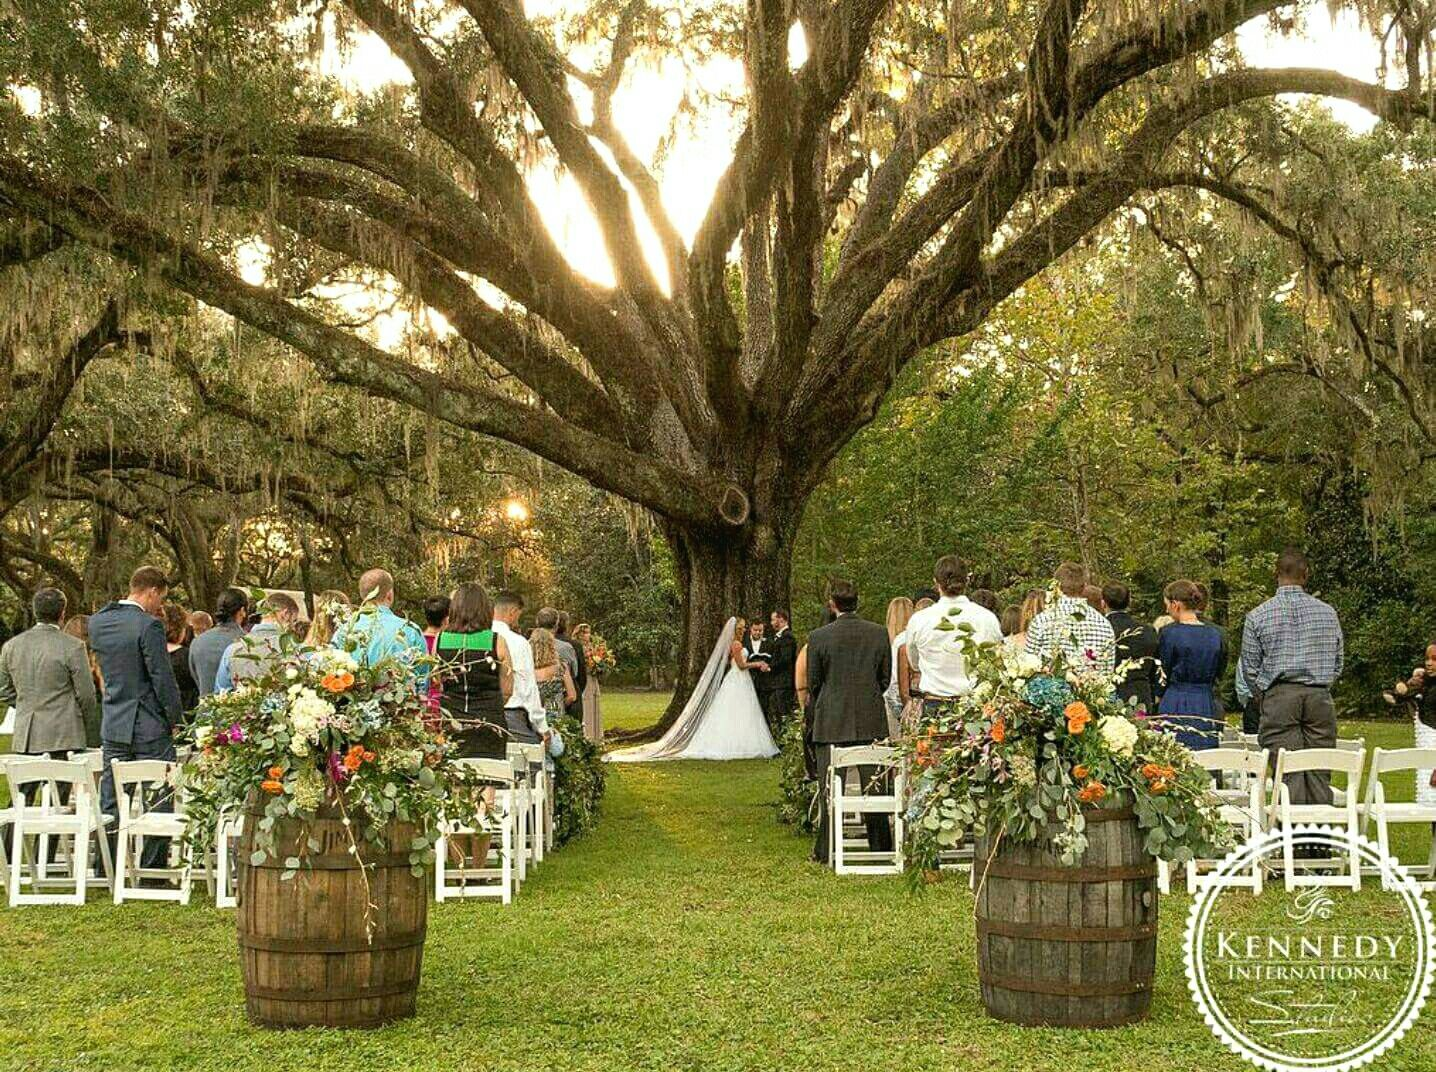 Eden Gardens State Park, Oak tree, fall wedding, outdoor wedding ...